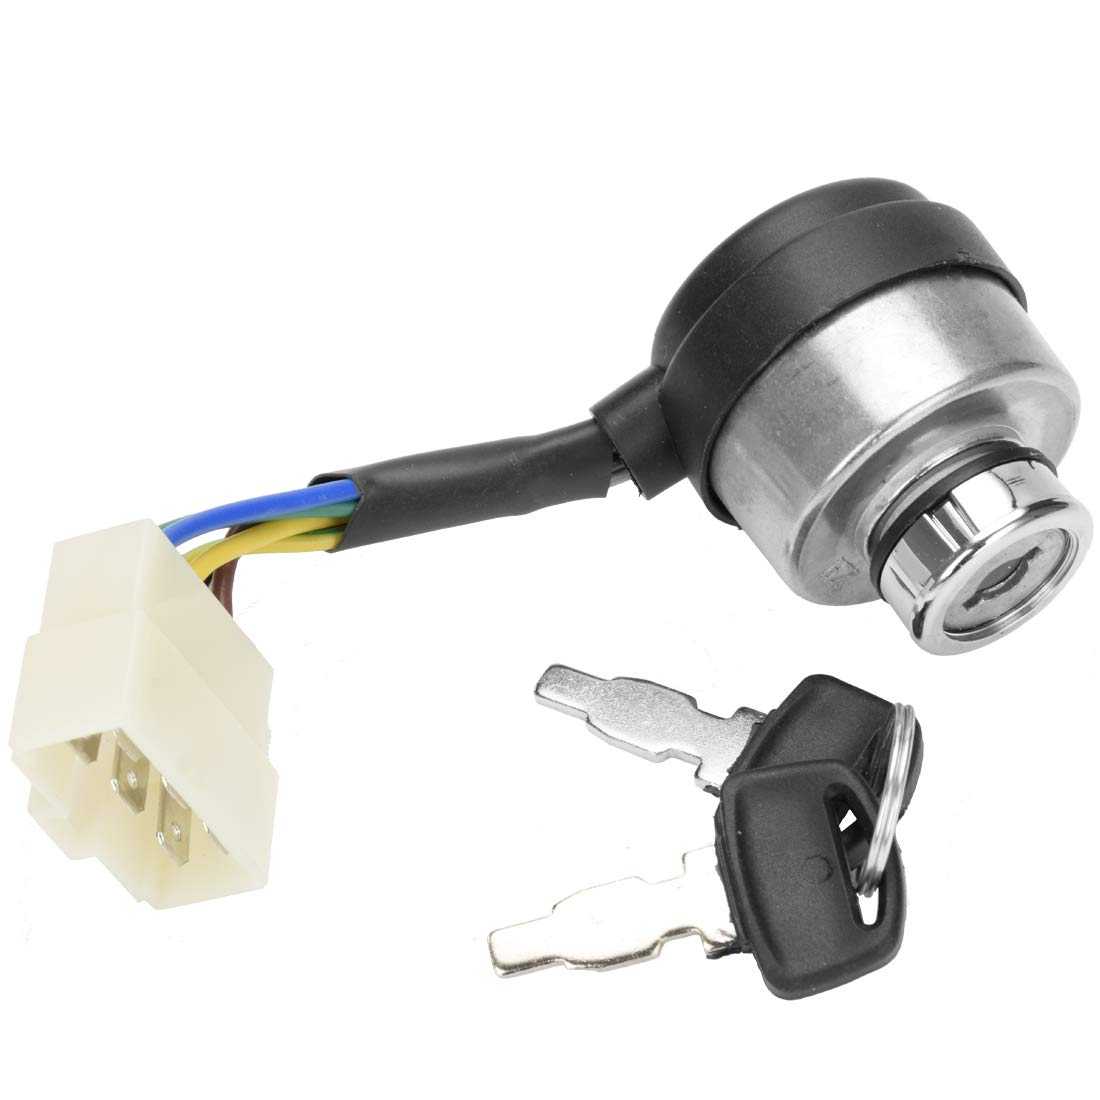 FVRITO Start Ignition Key On Off Switch 6 Wires Compatible with DuroMax XP4400E XP4400EH XP8500E XP10000E MX4500E XP6500E XP8500E 5KW 6KW 7KW 188F 190F 5KW 6KW 7KW 188F 190F Chinese Generator